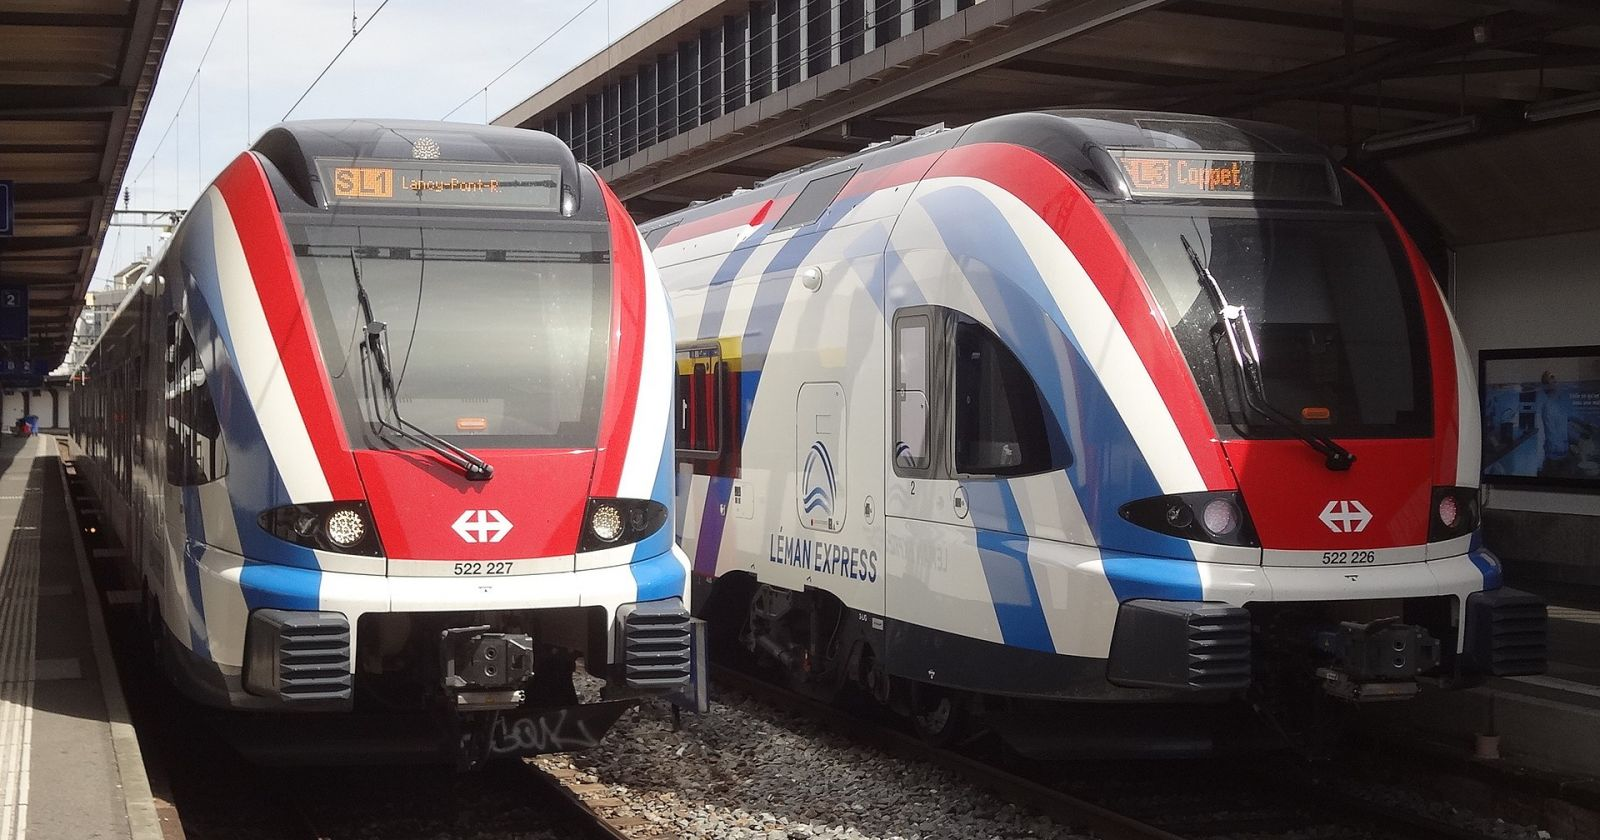 The new Léman Express railway network will easily and quickly connect France to Switzerland. photo source @wikipedia.org